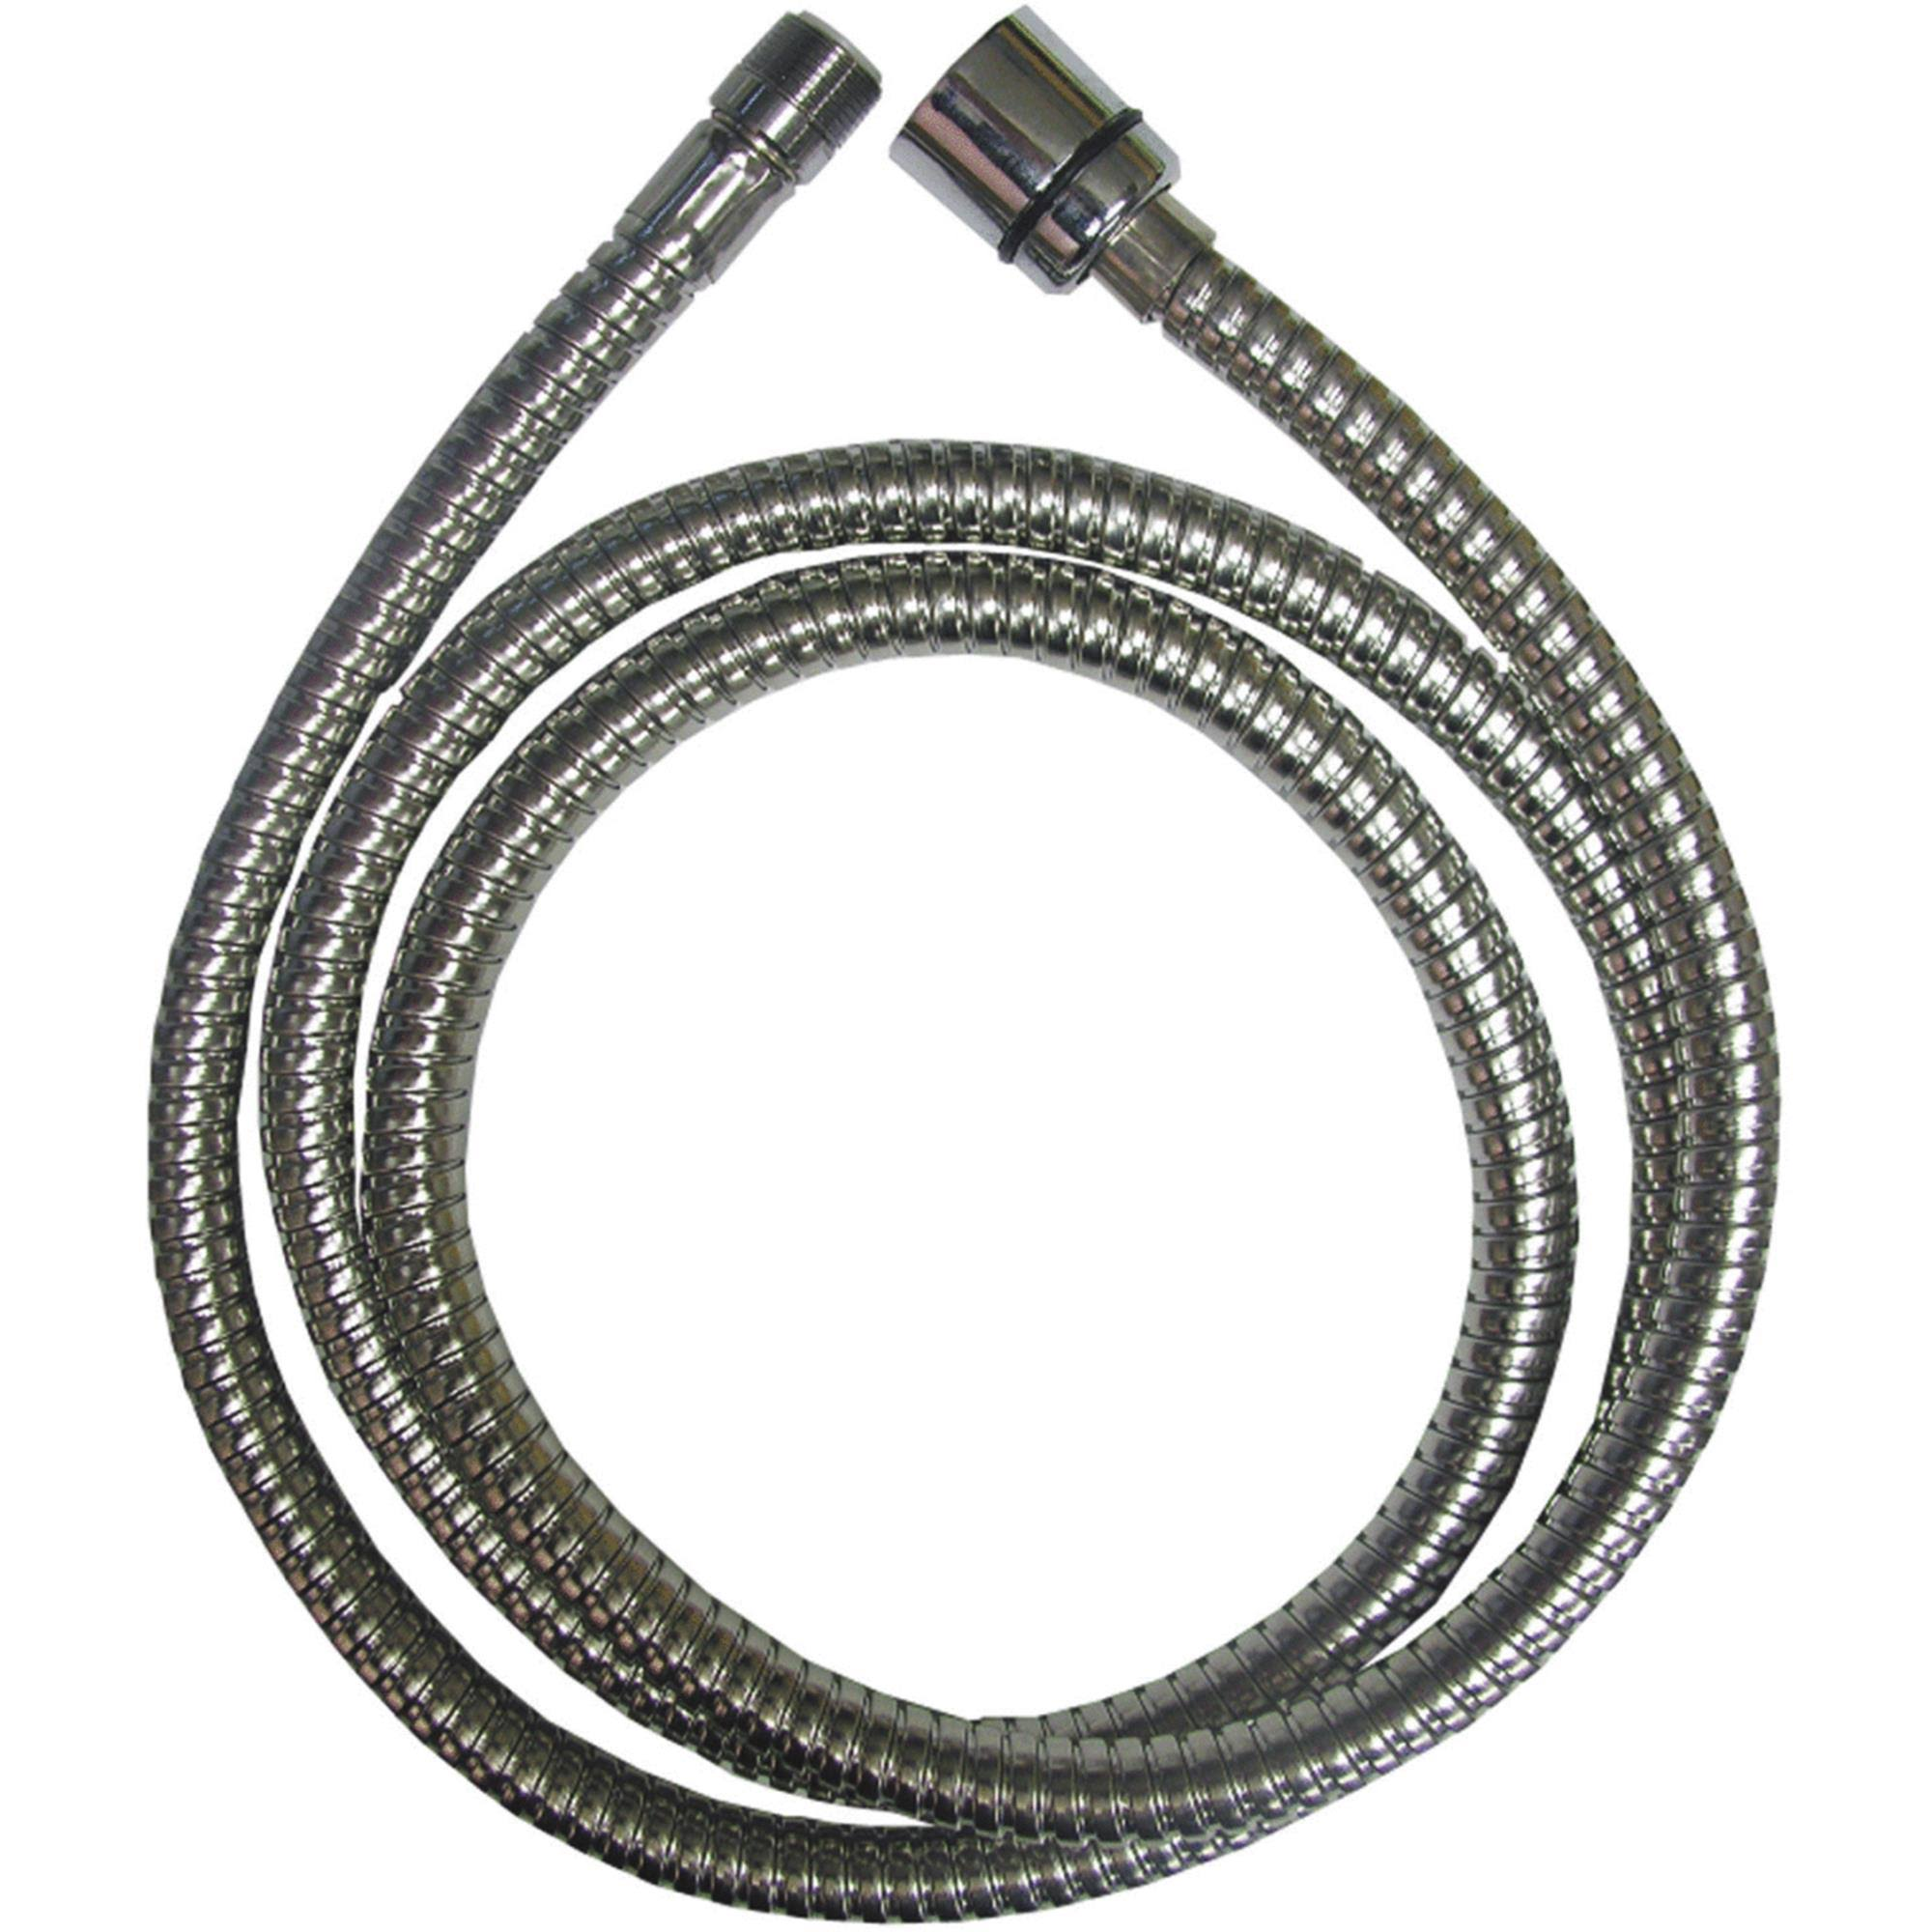 Lasco Replacement Sprayer Hose